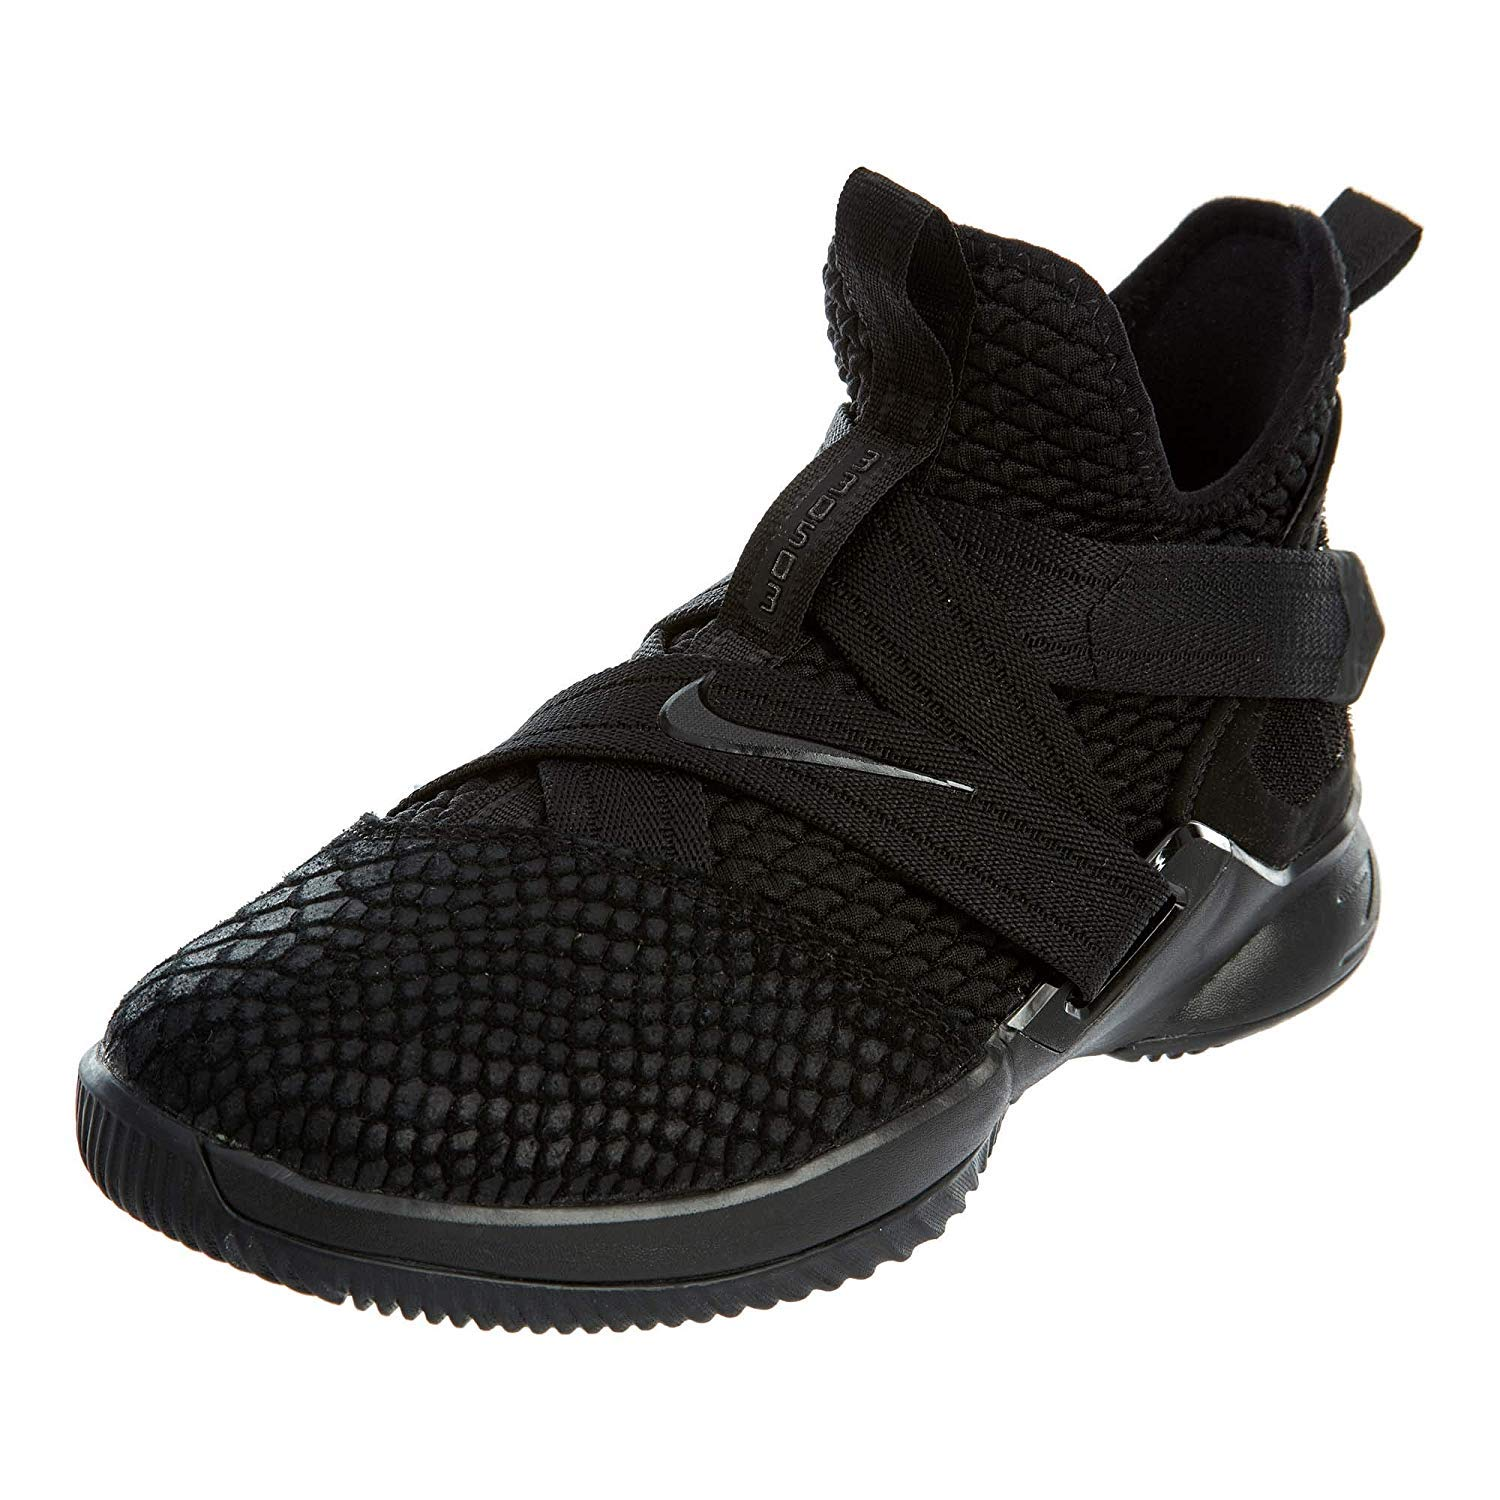 the best attitude fdb80 92195 Amazon.com | Nike Lebron Soldier XII SFG (GS) Girls ...